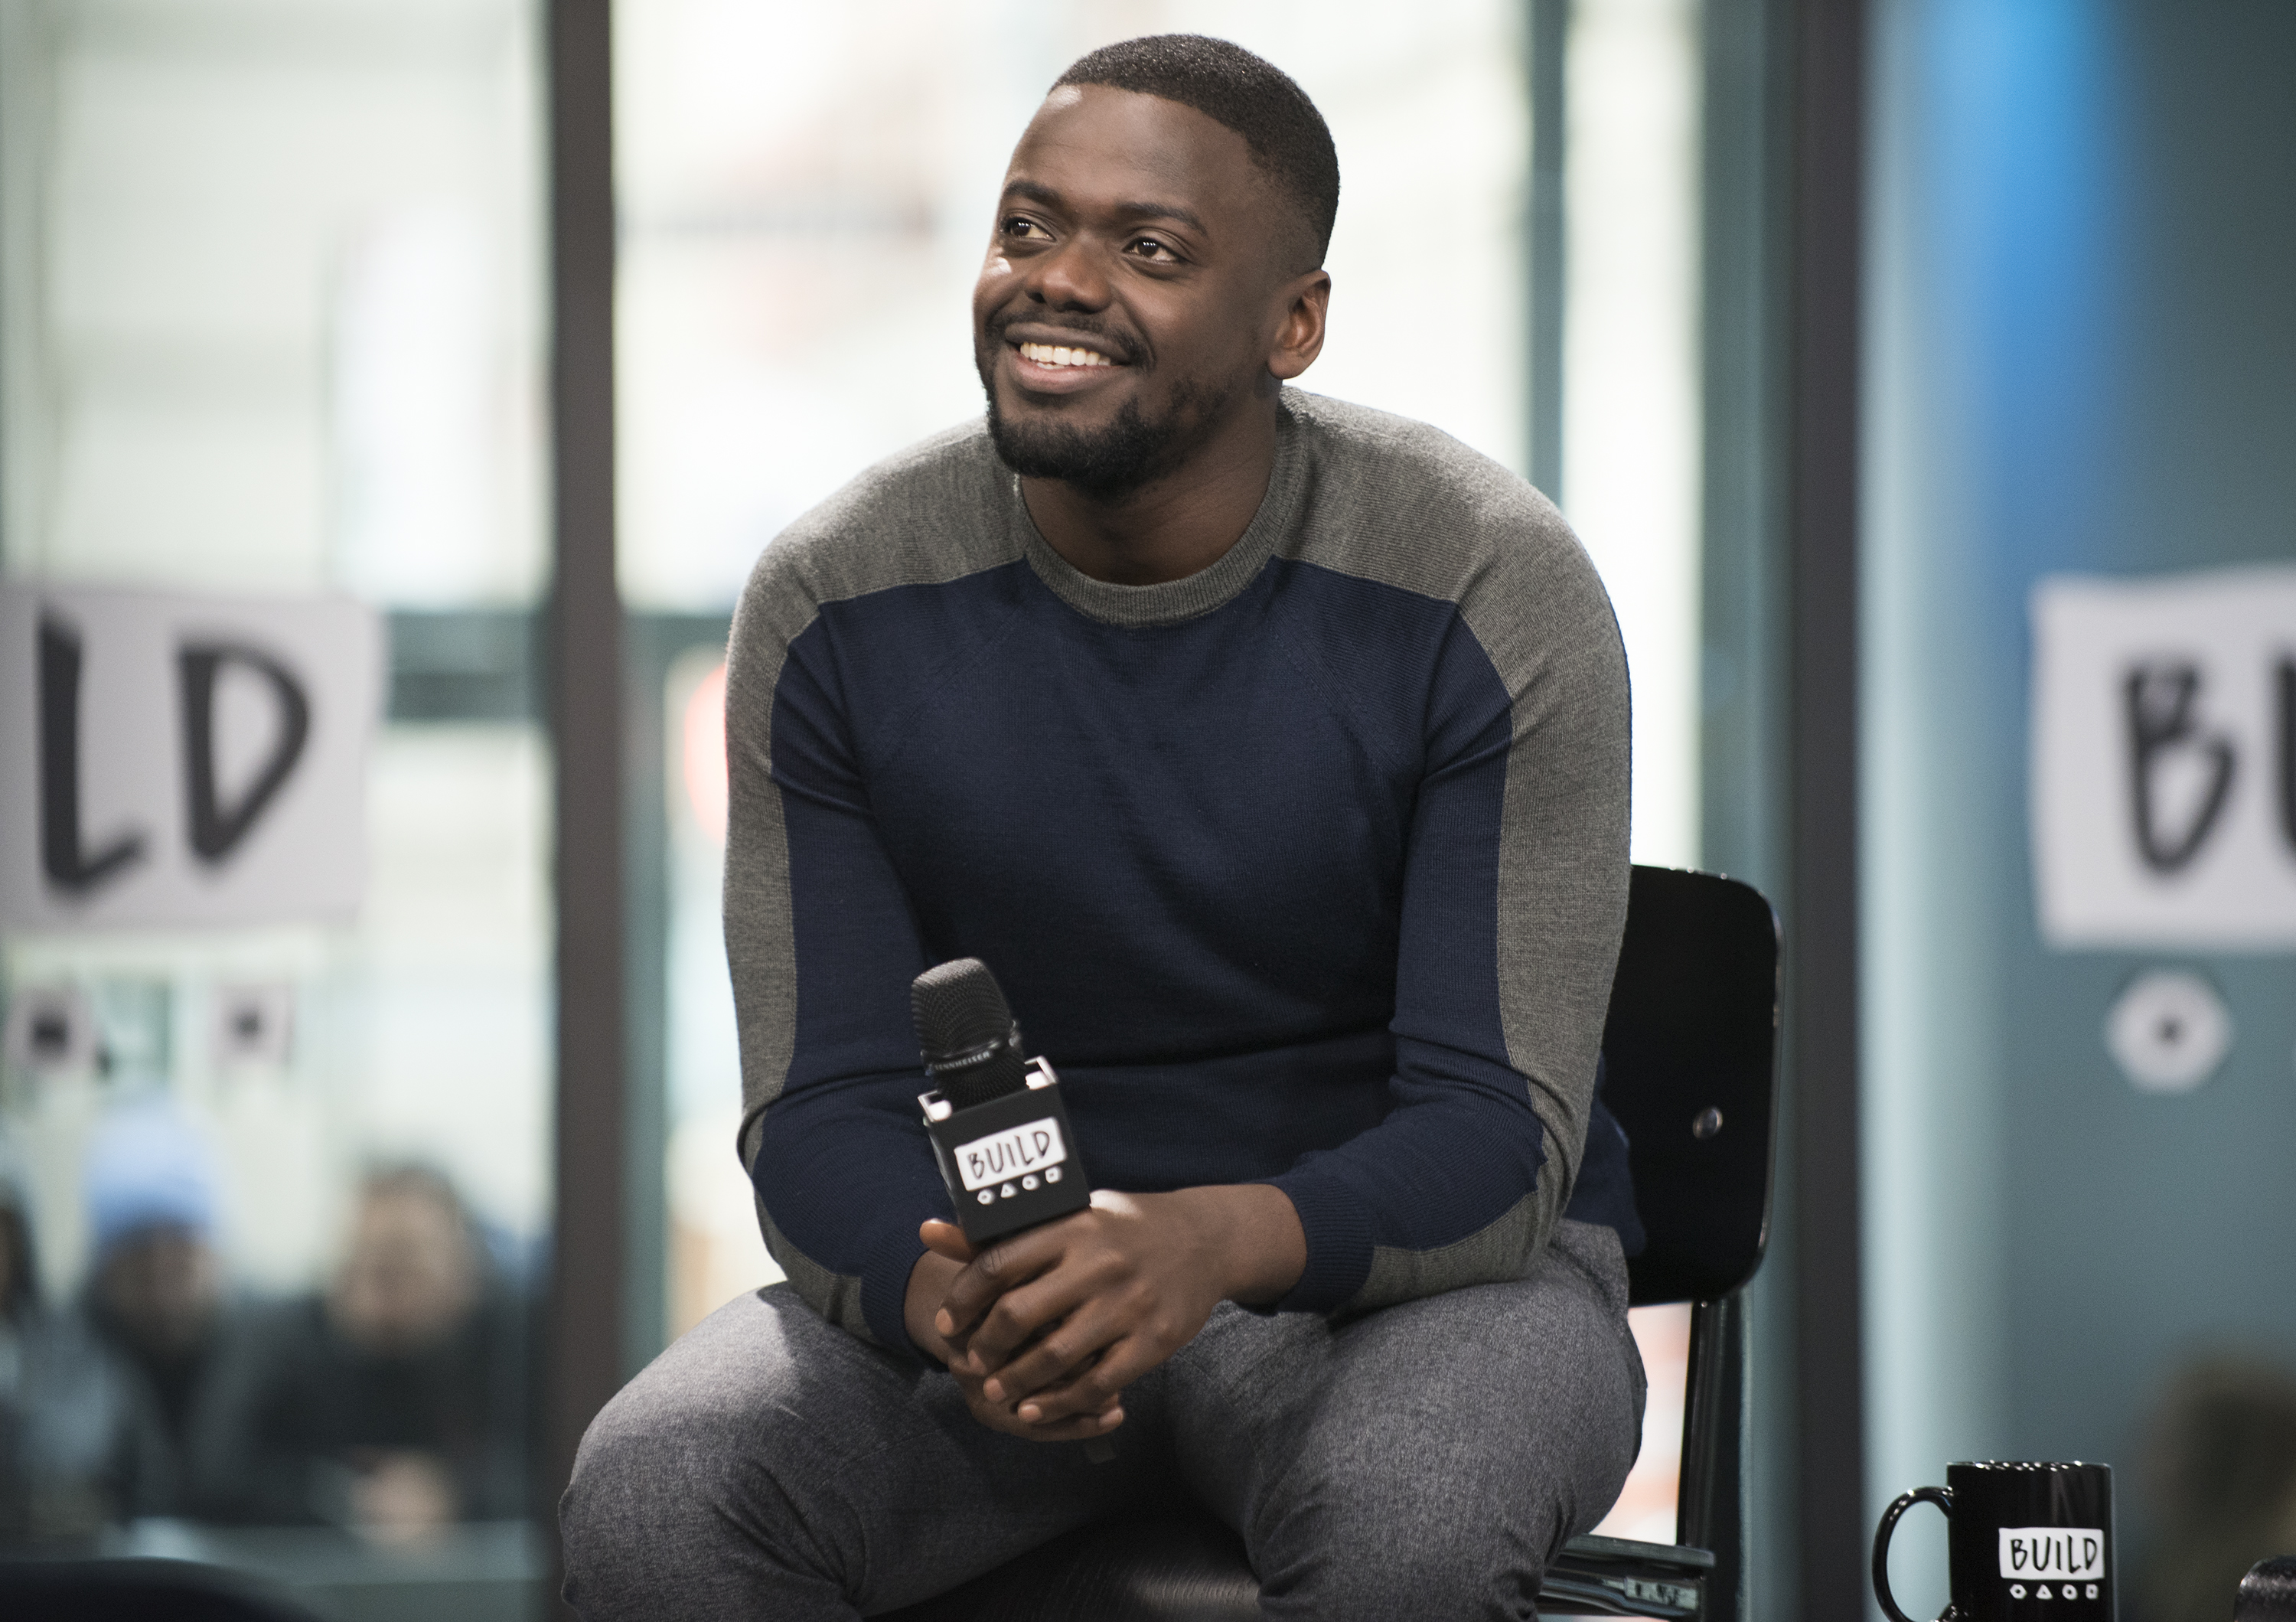 Daniel Kaluuya attends the Build Series to discuss his new film  Get Out  at Build Studio on February 21, 2017 in New York City.